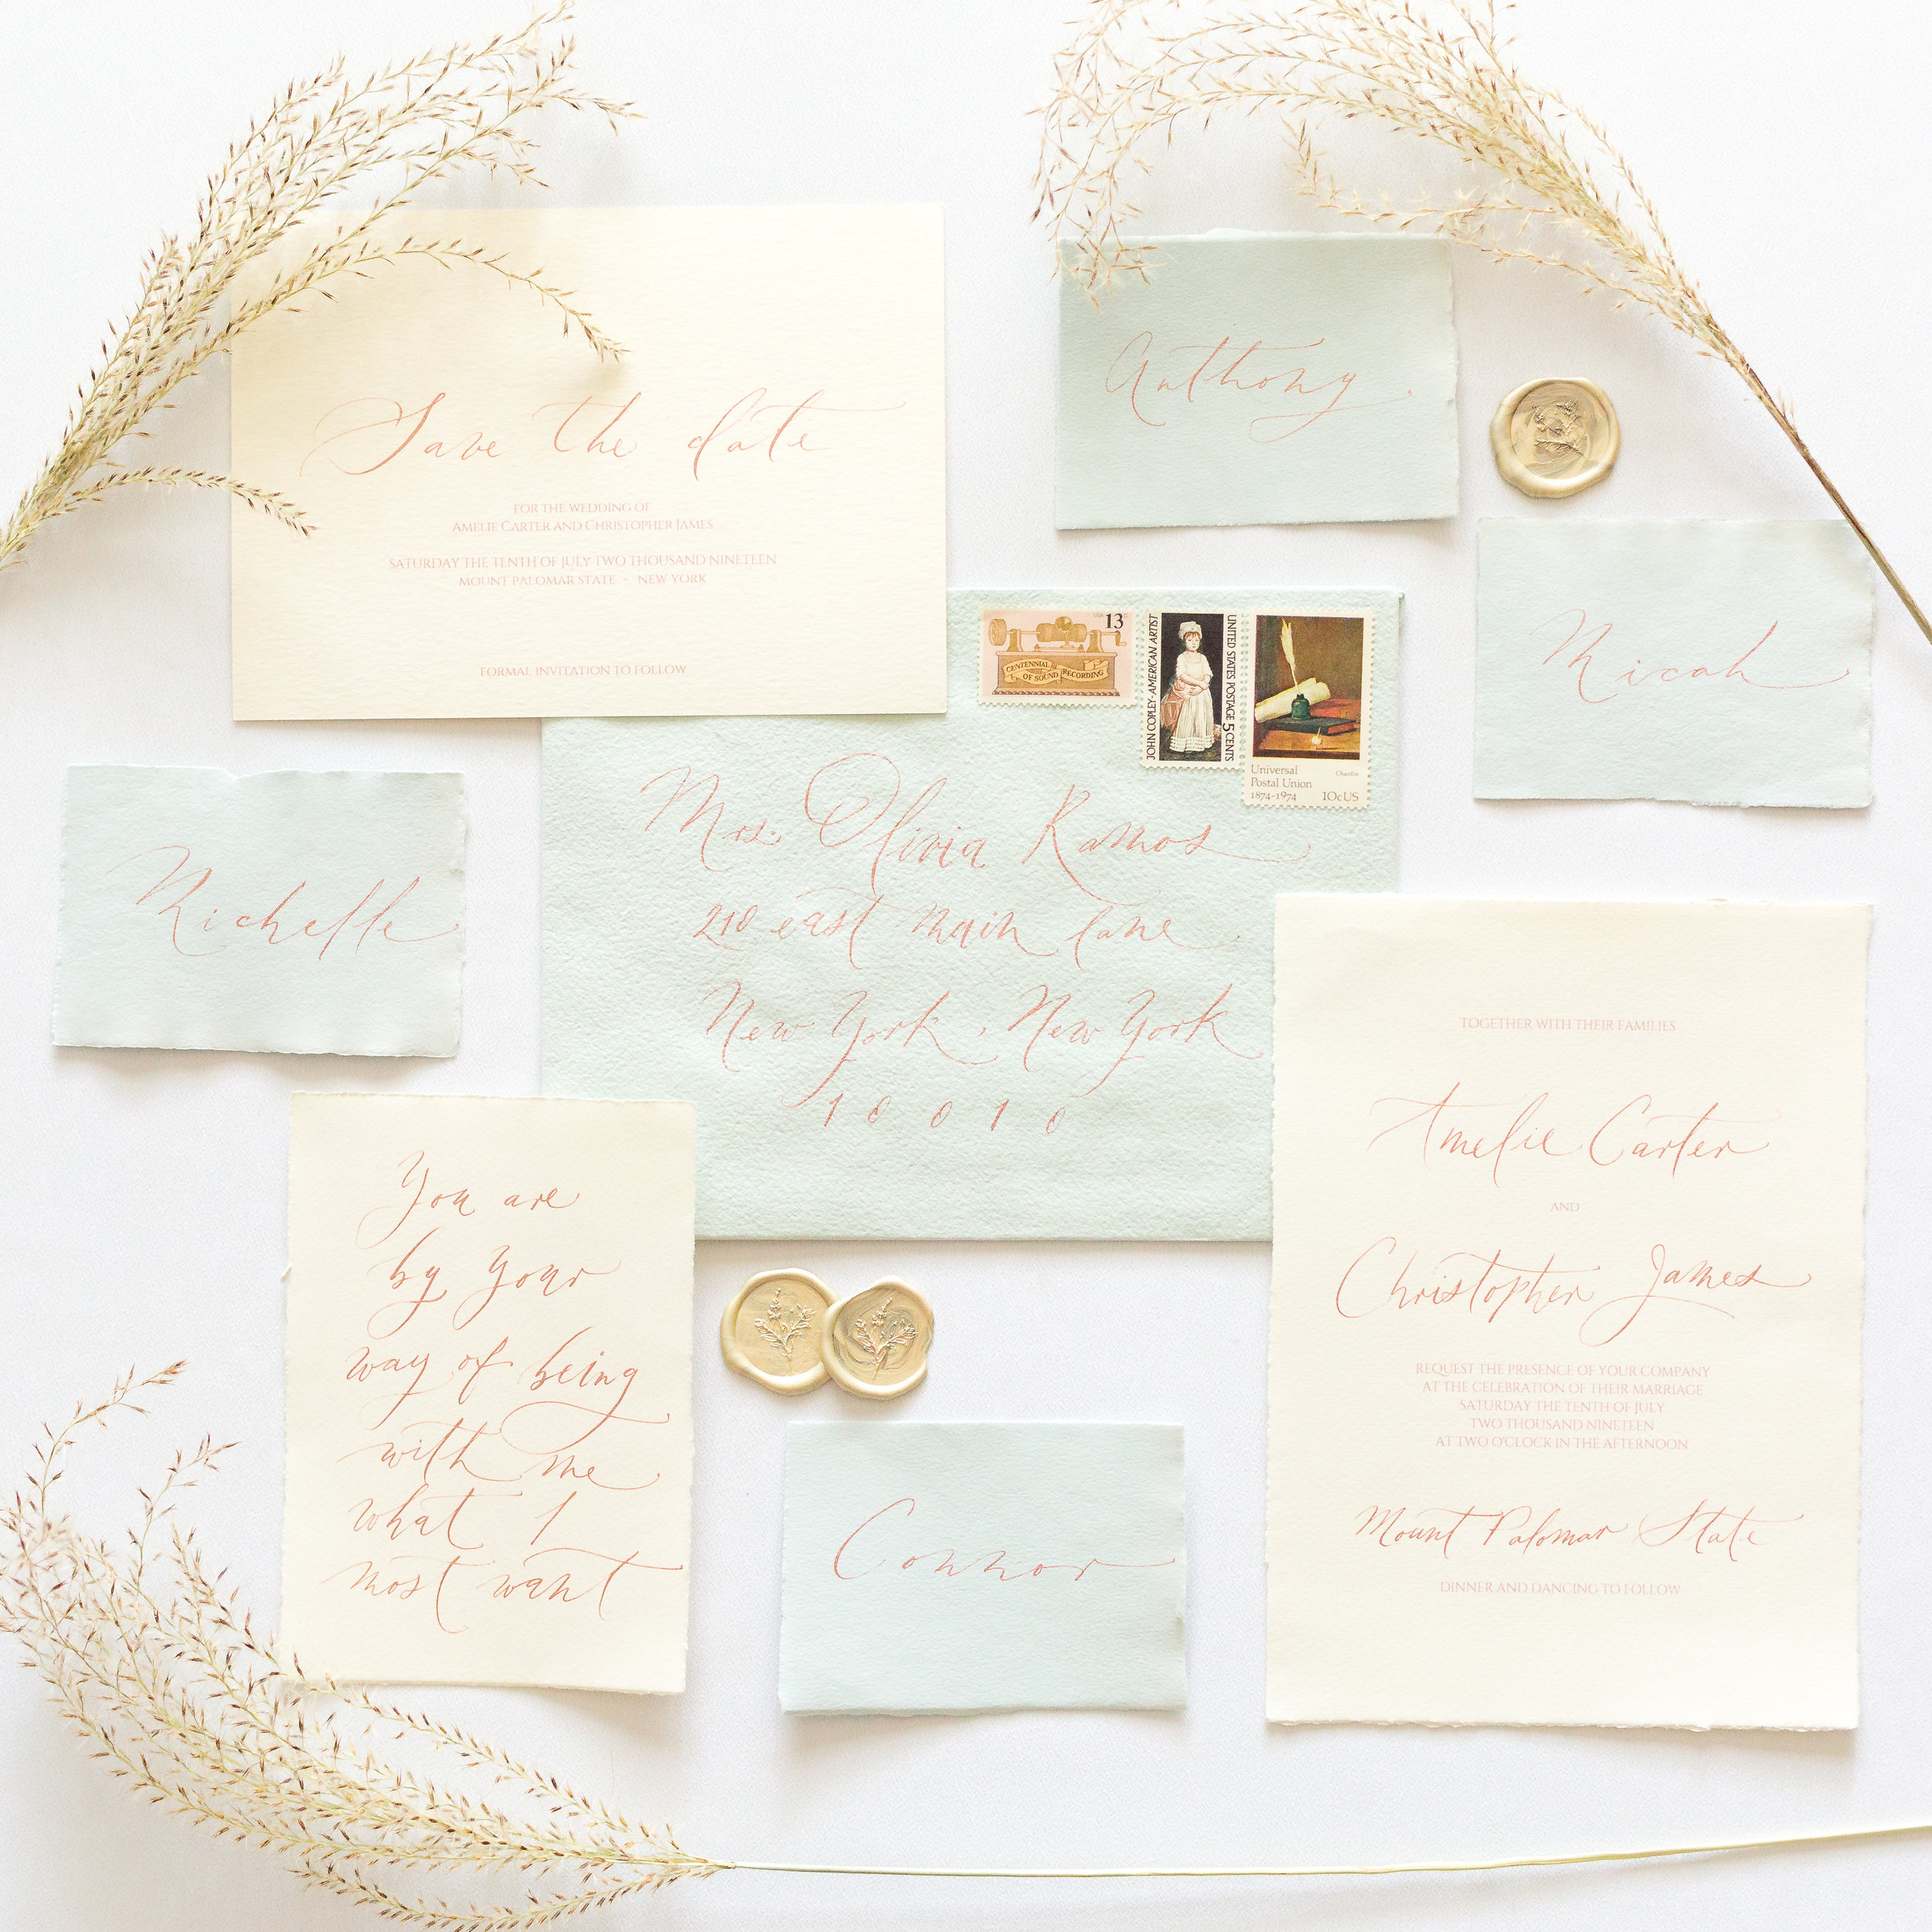 Bespoke Wedding Calligraphy Invitation Suite - Esperanza Atelier Fine Art Calligraphy. Bespoke Wedding envelope Calligraphy Houston weddings -  Houston Calligrapher.